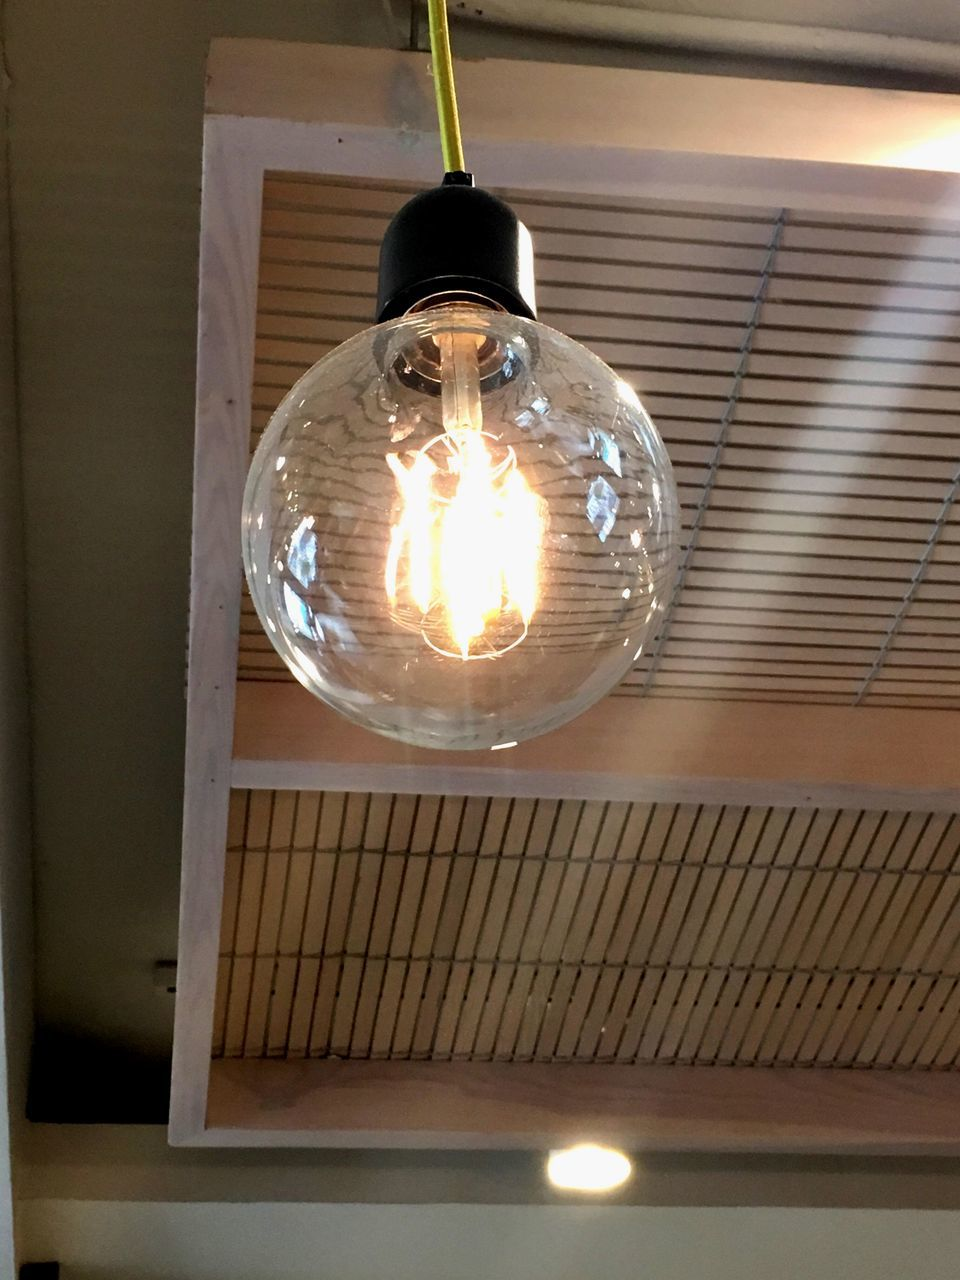 light bulb, illuminated, lighting equipment, electricity, indoors, filament, low angle view, electric light, glowing, ceiling, light, no people, hanging, close-up, technology, transparent, fuel and power generation, glass - material, pendant light, connection, electrical equipment, electric lamp, power supply